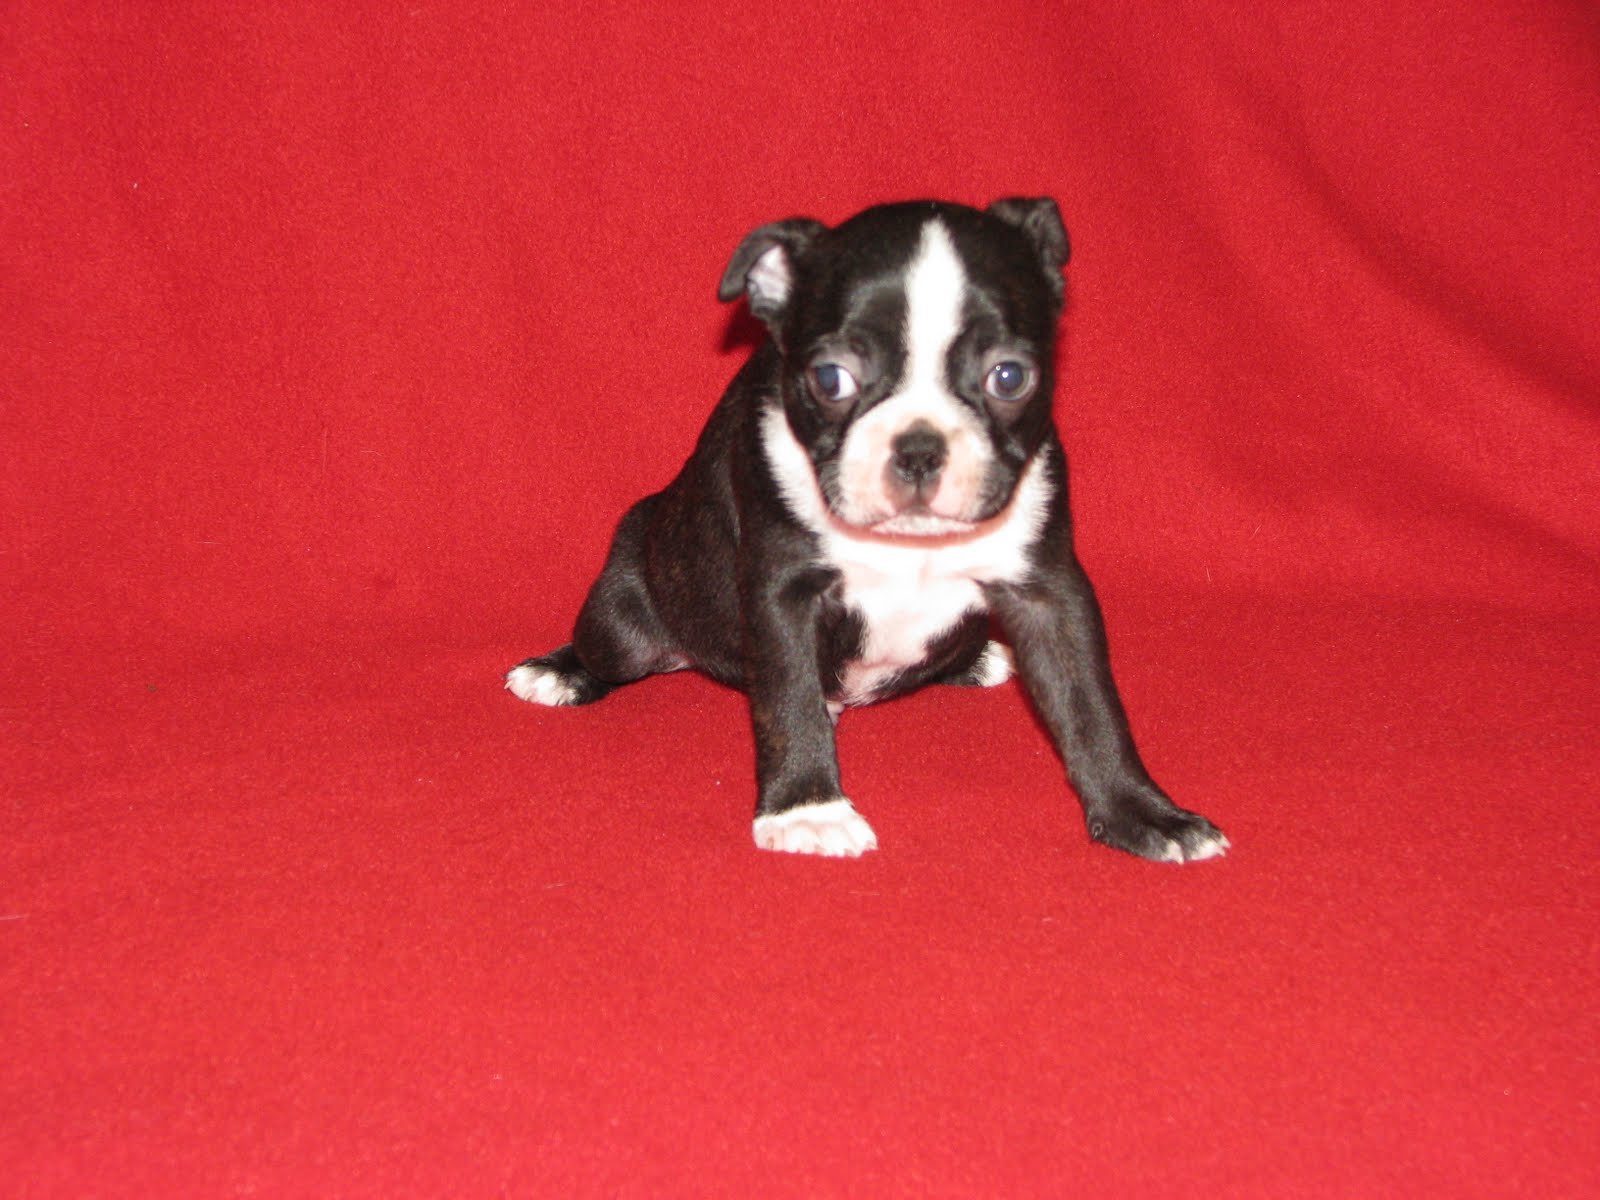 cute puppy Boston Terrier on red bed